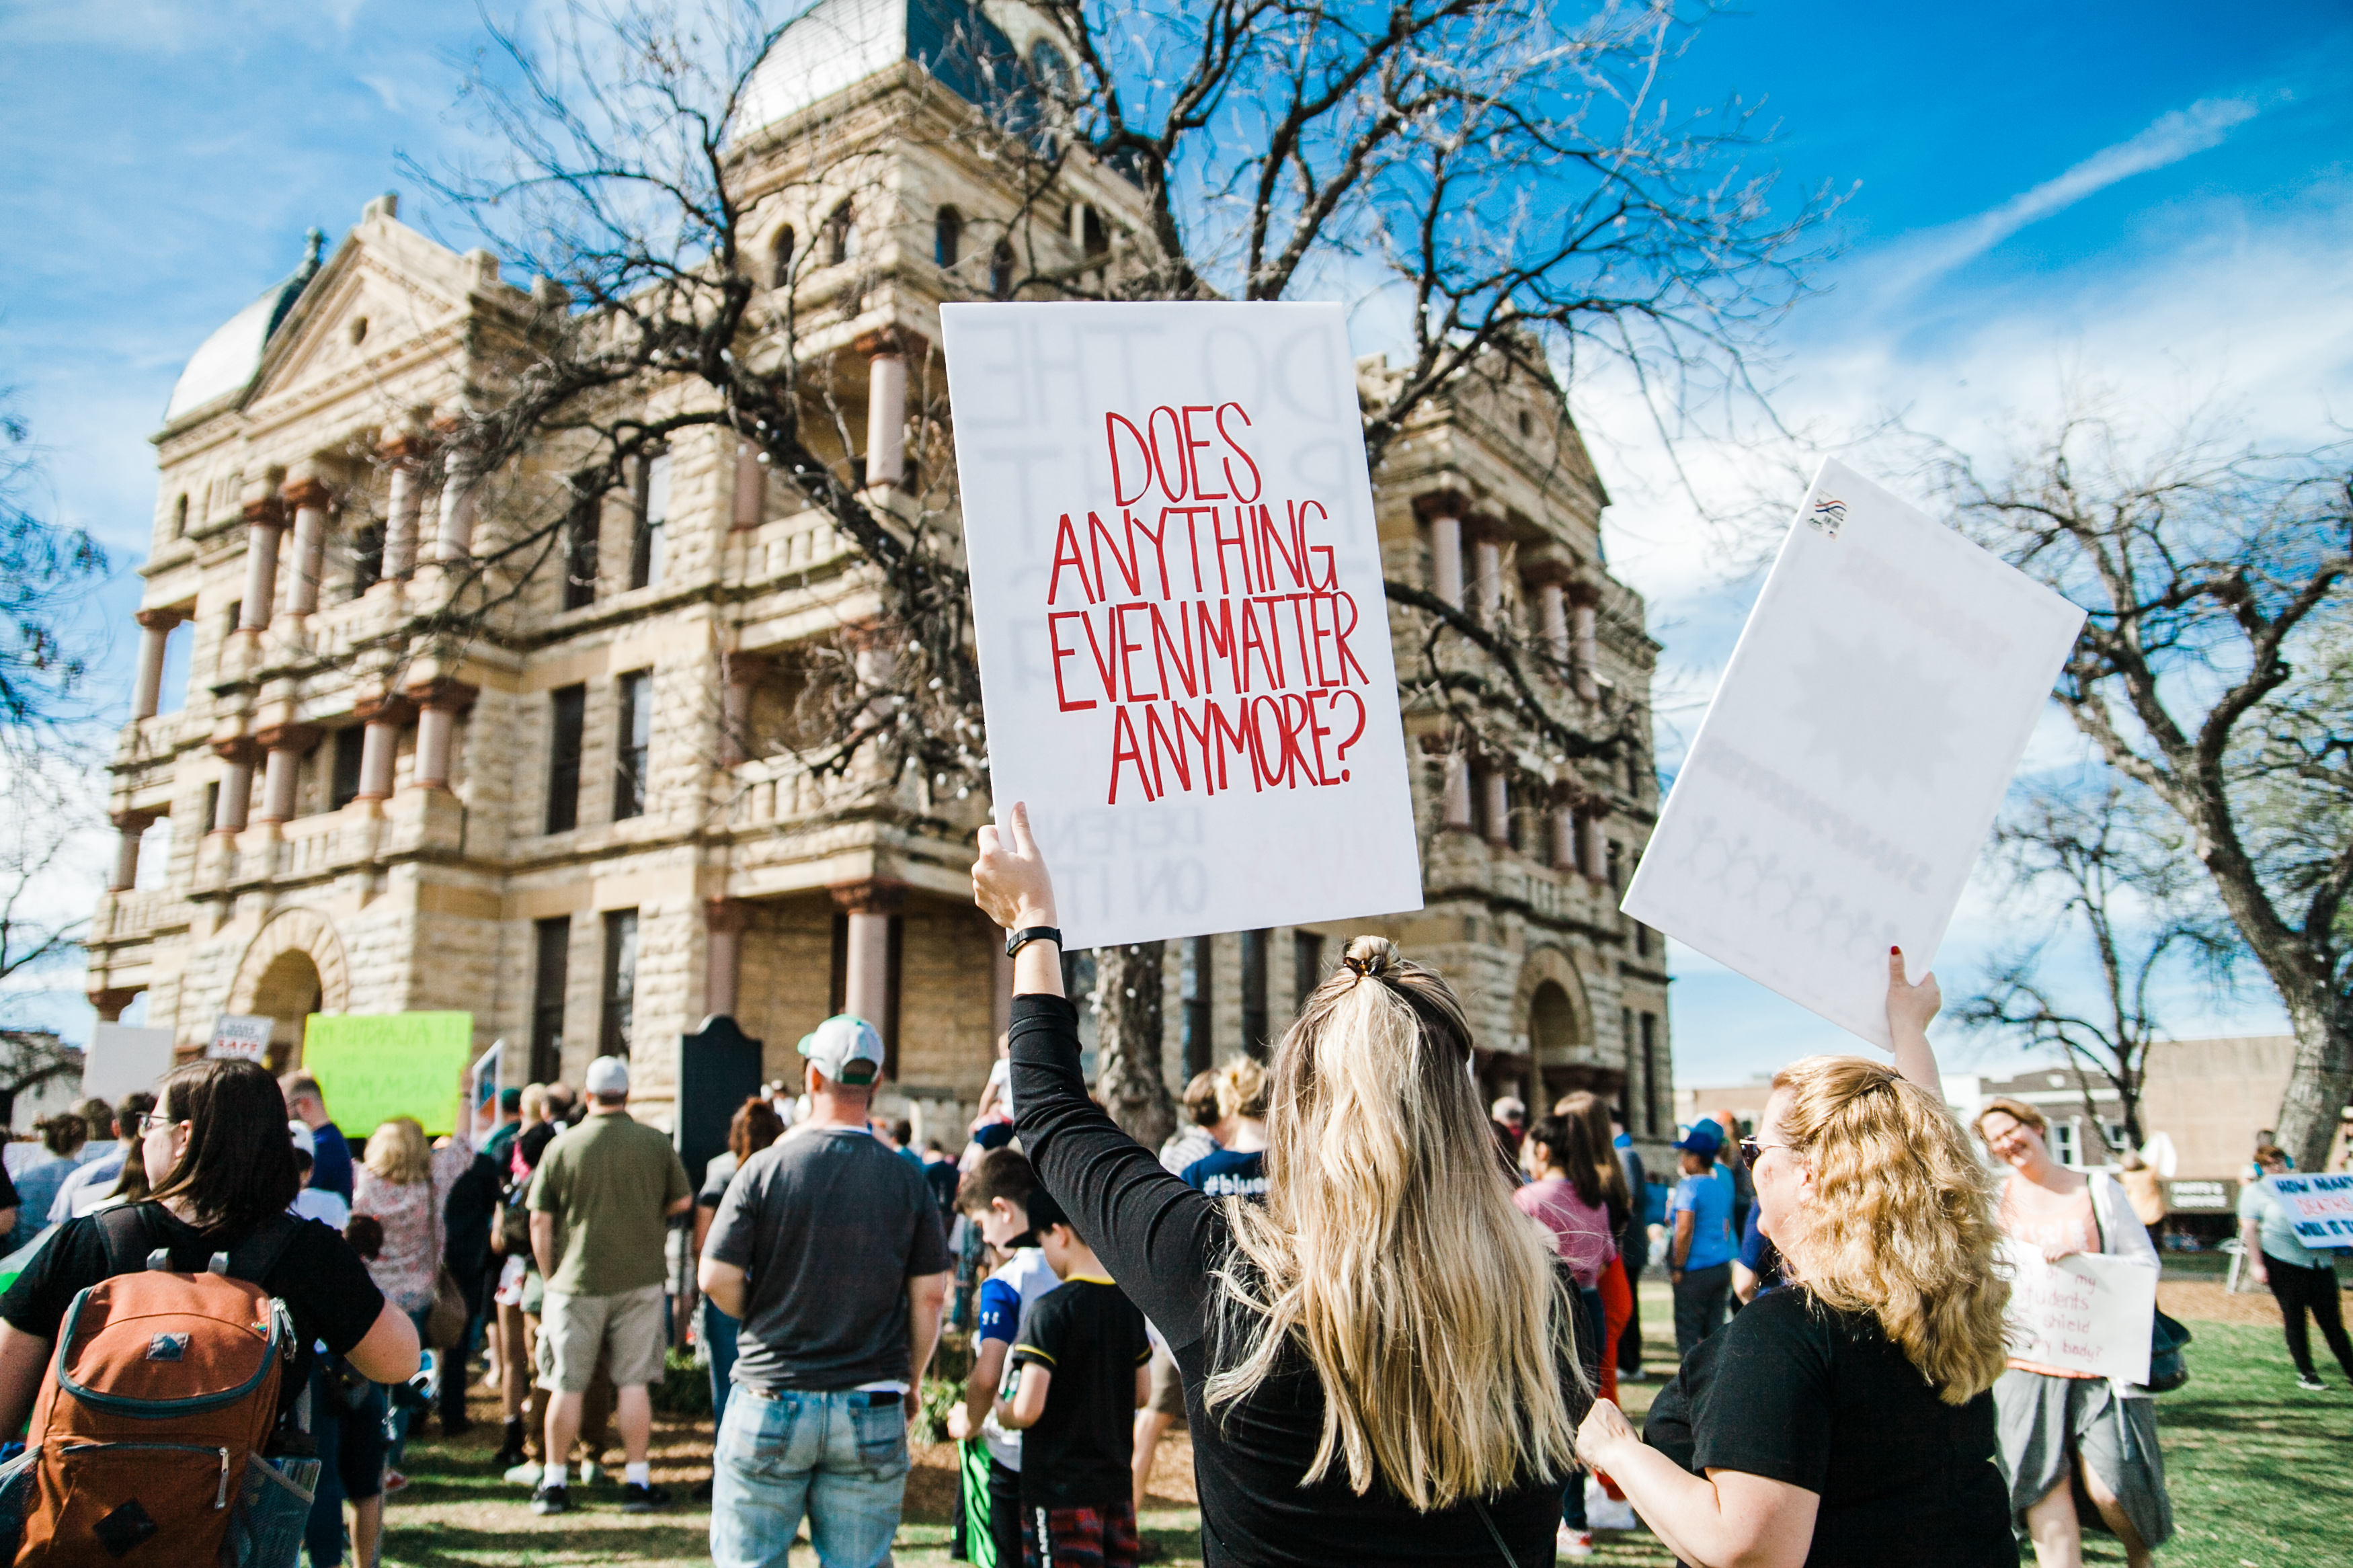 A poignant protest sign seen at the March for Our Lives rally in Denton, Texas.